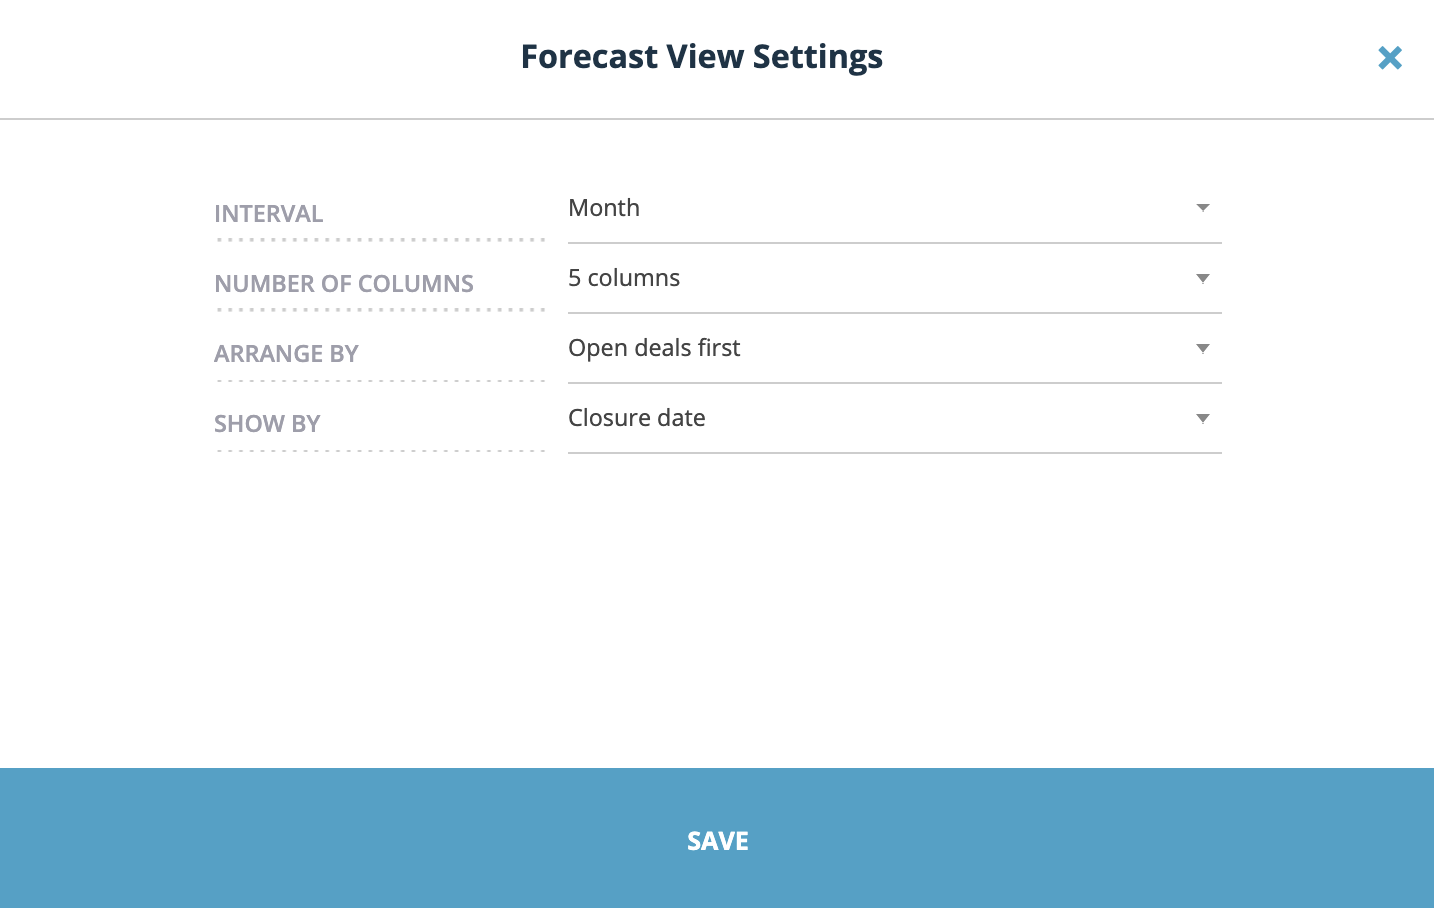 forecast-view-settings-teamgate-crm.png